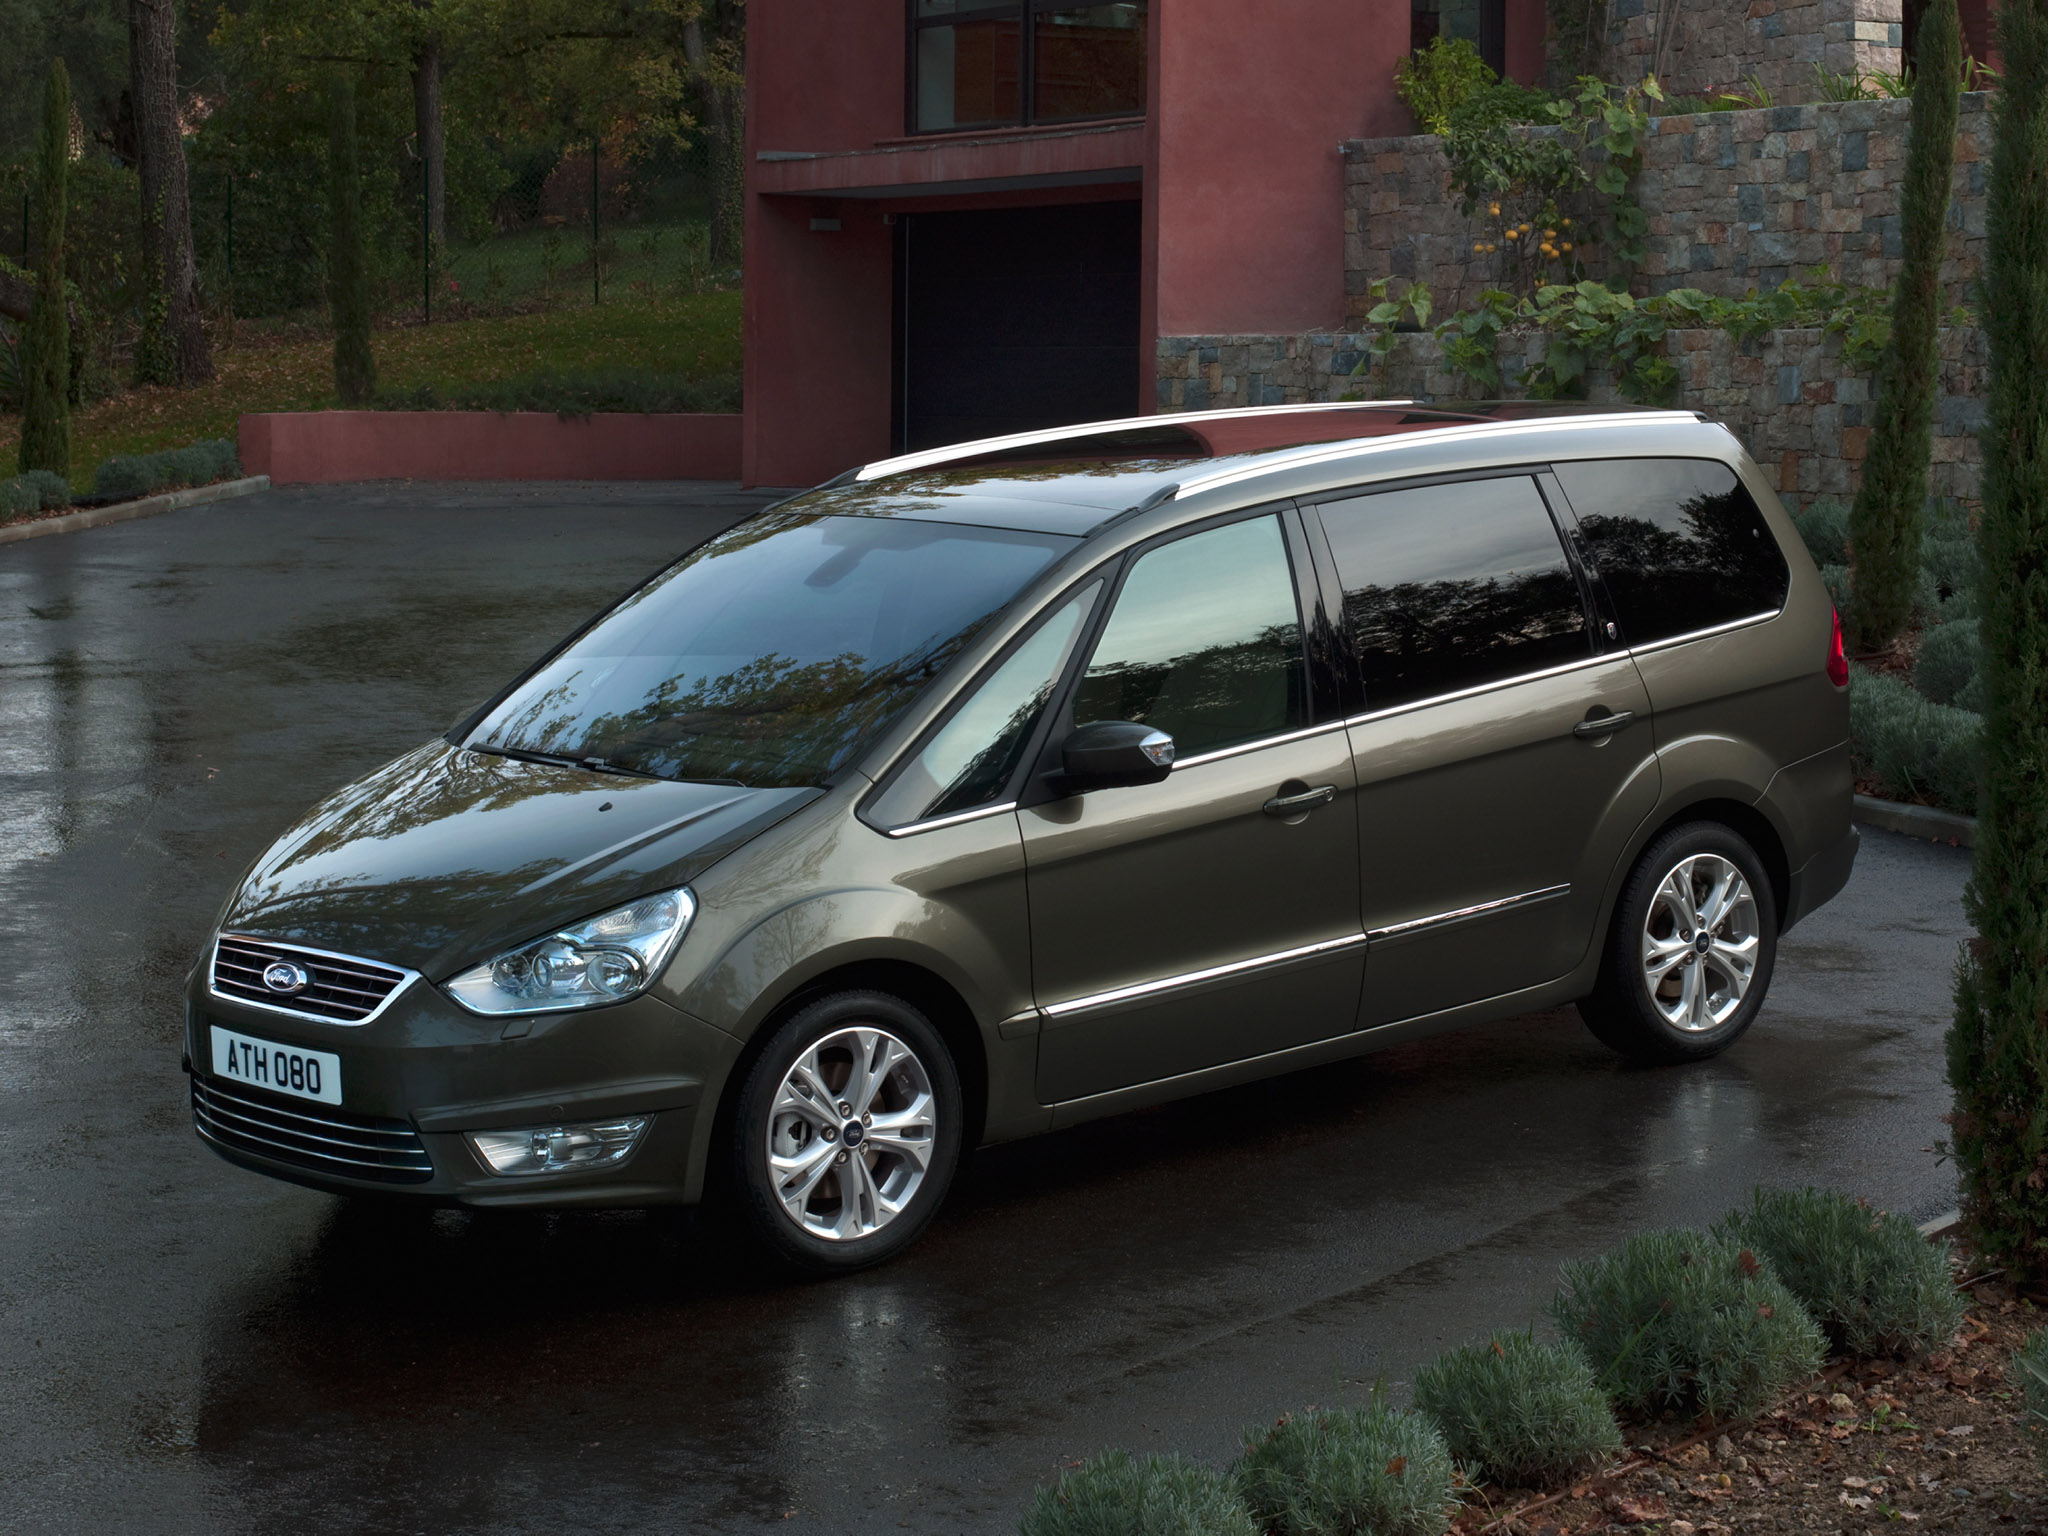 Ford Galaxy 2.0 2010 photo - 2